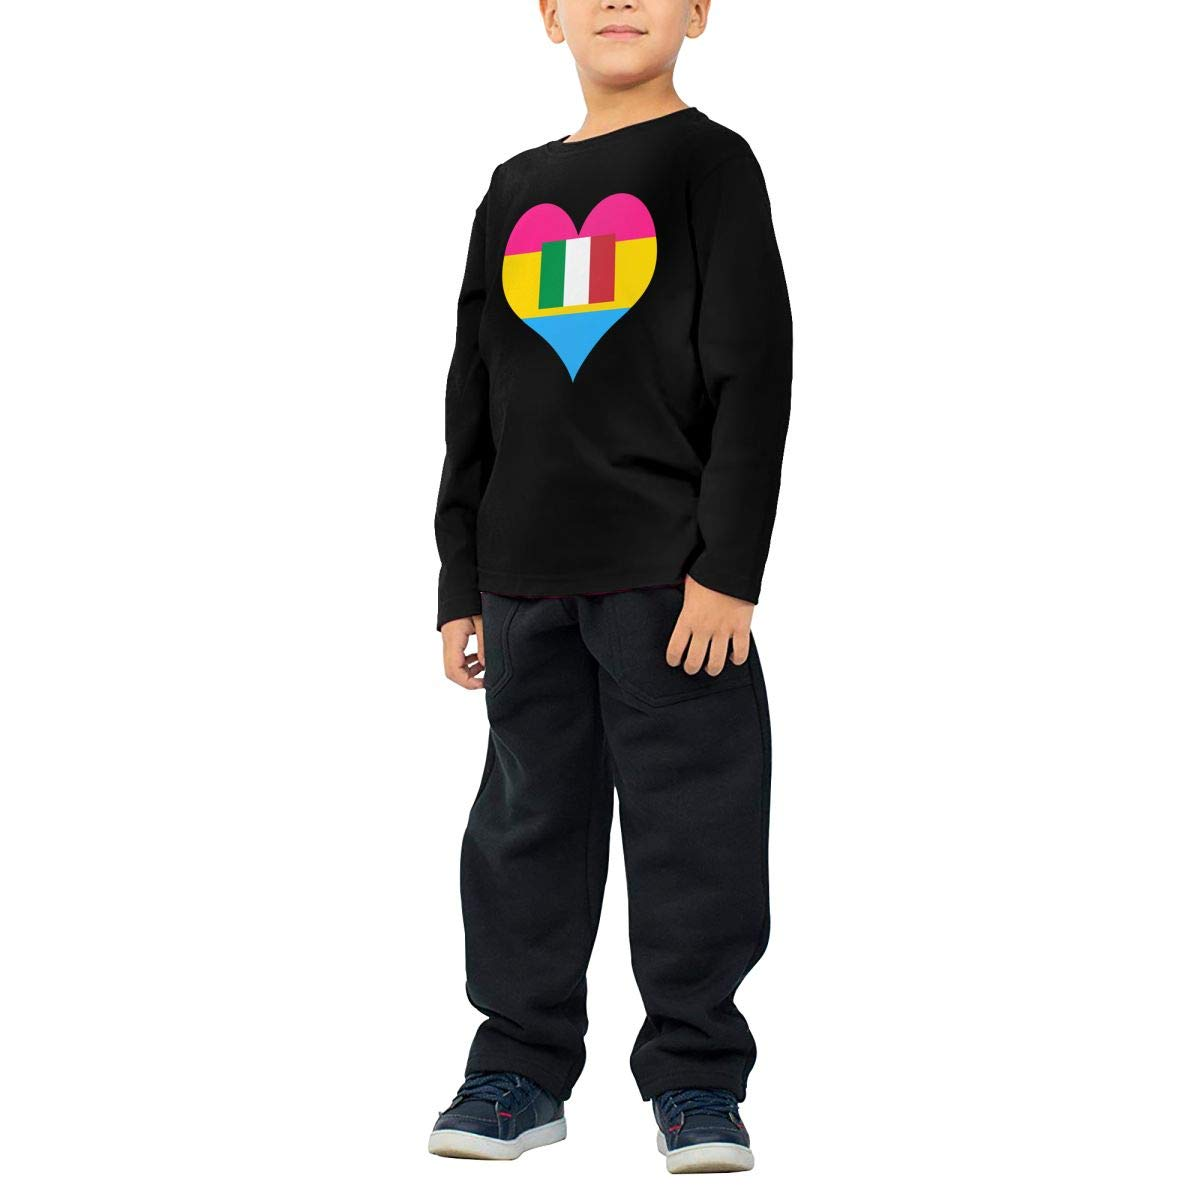 CERTONGCXTS Childrens Pansexual Heart Italian Flag ComfortSoft Long Sleeve Shirt